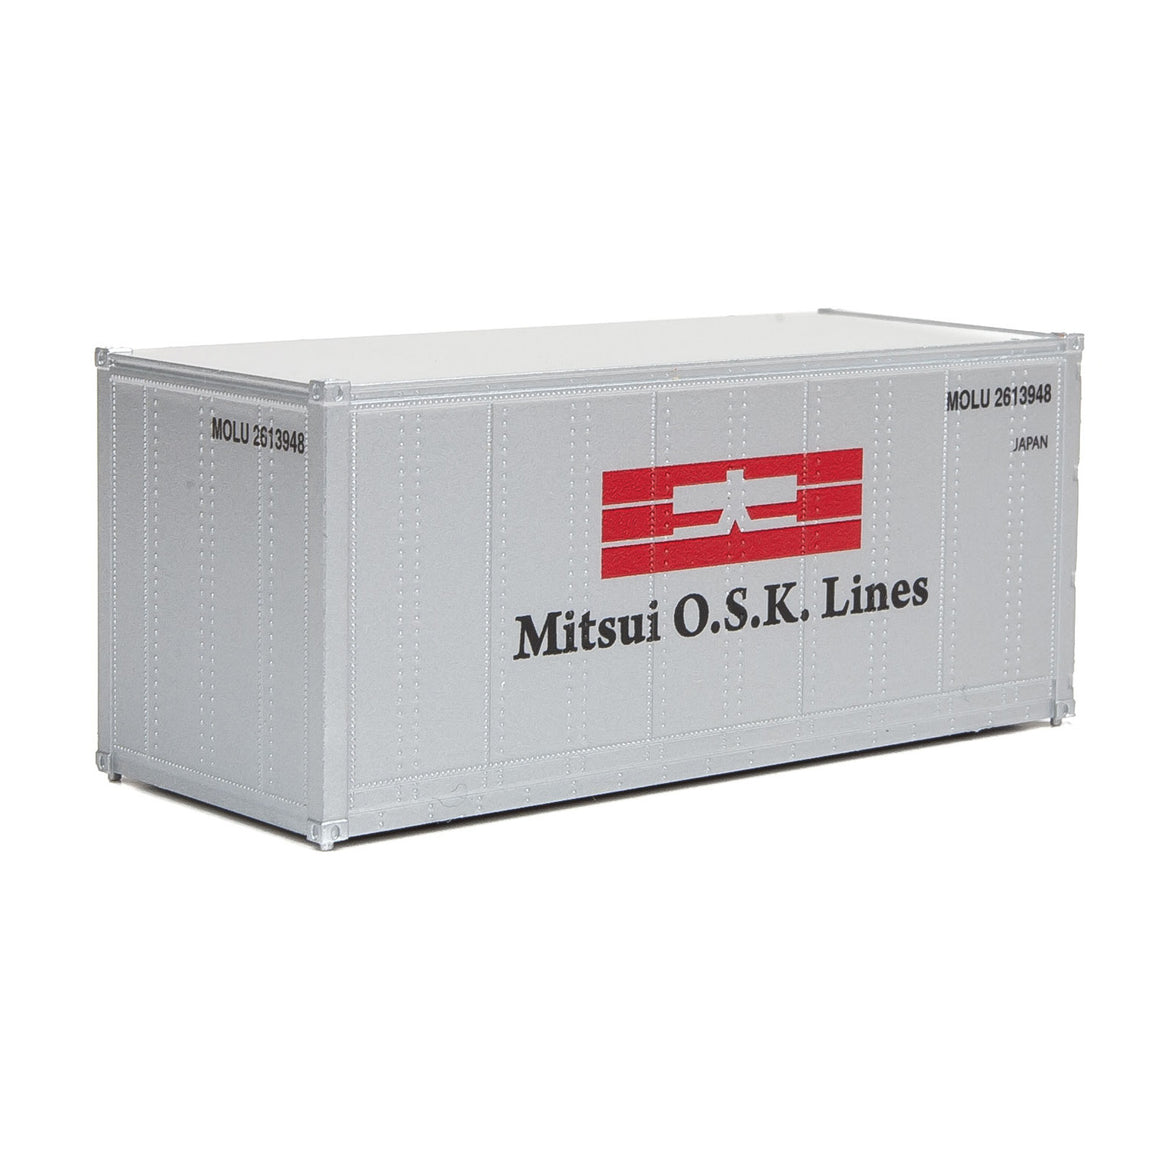 HO Scale: 20' Smooth-side Container - Mitsui OSK